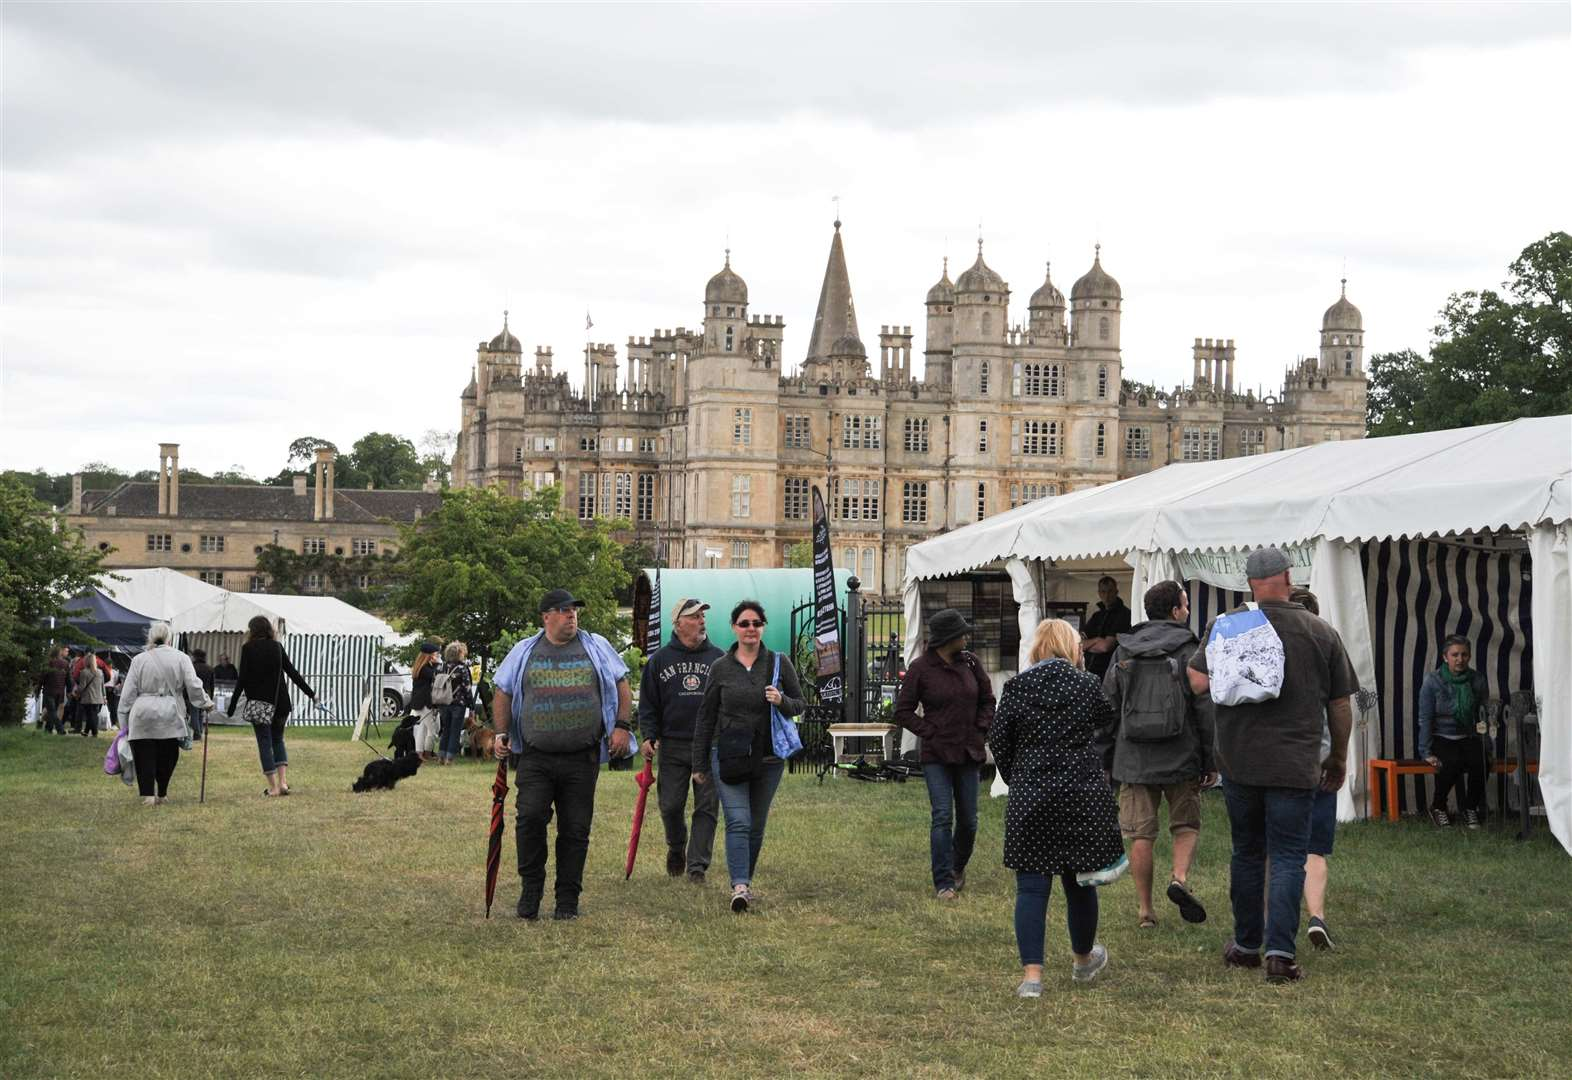 Burghley House event brings bin the crowds